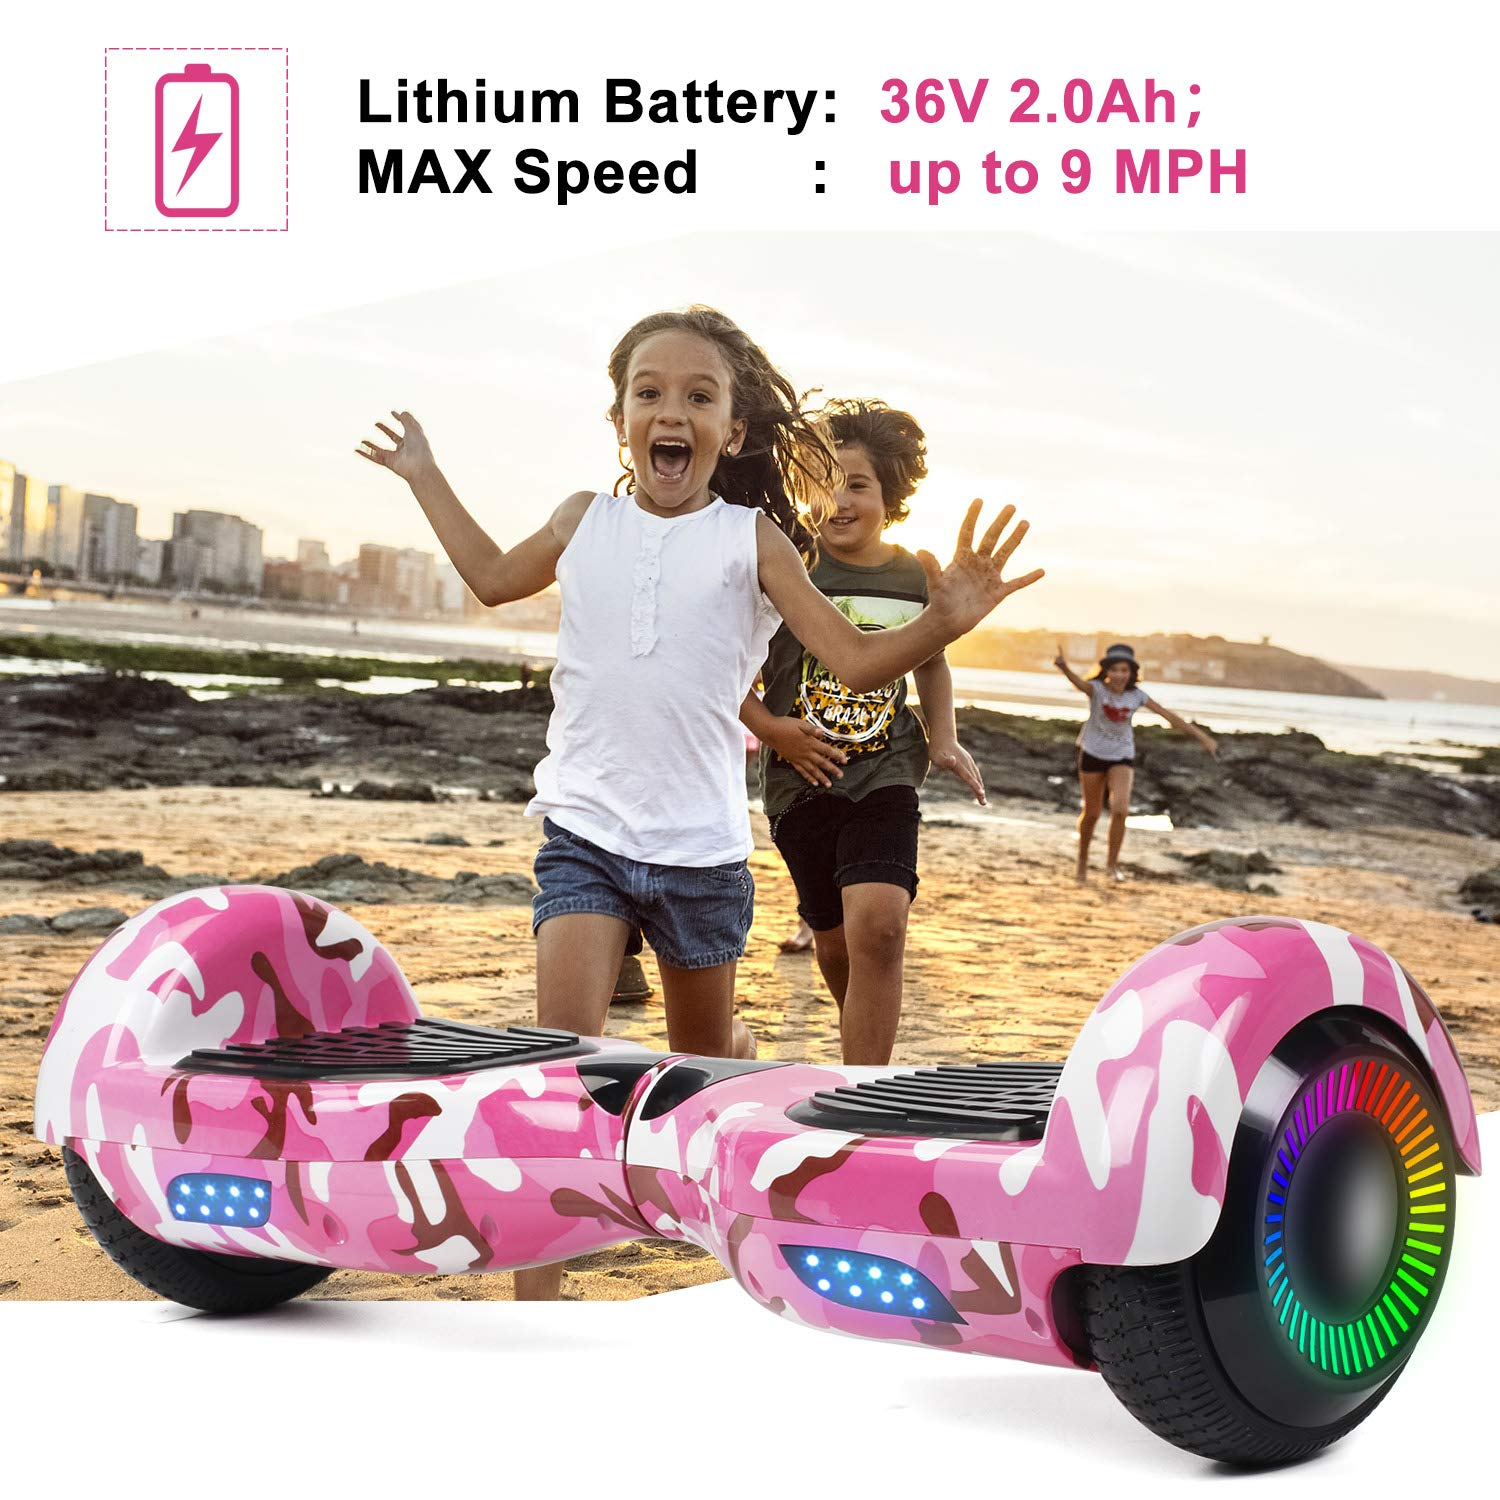 SISIGAD Hoverboard Self Balancing Scooter 6.5'' Two-Wheel Self Balancing Hoverboard with LED Lights Electric Scooter for Adult Kids Gift UL 2272 Certified Fun Edition - Pink Camou by SISIGAD (Image #3)